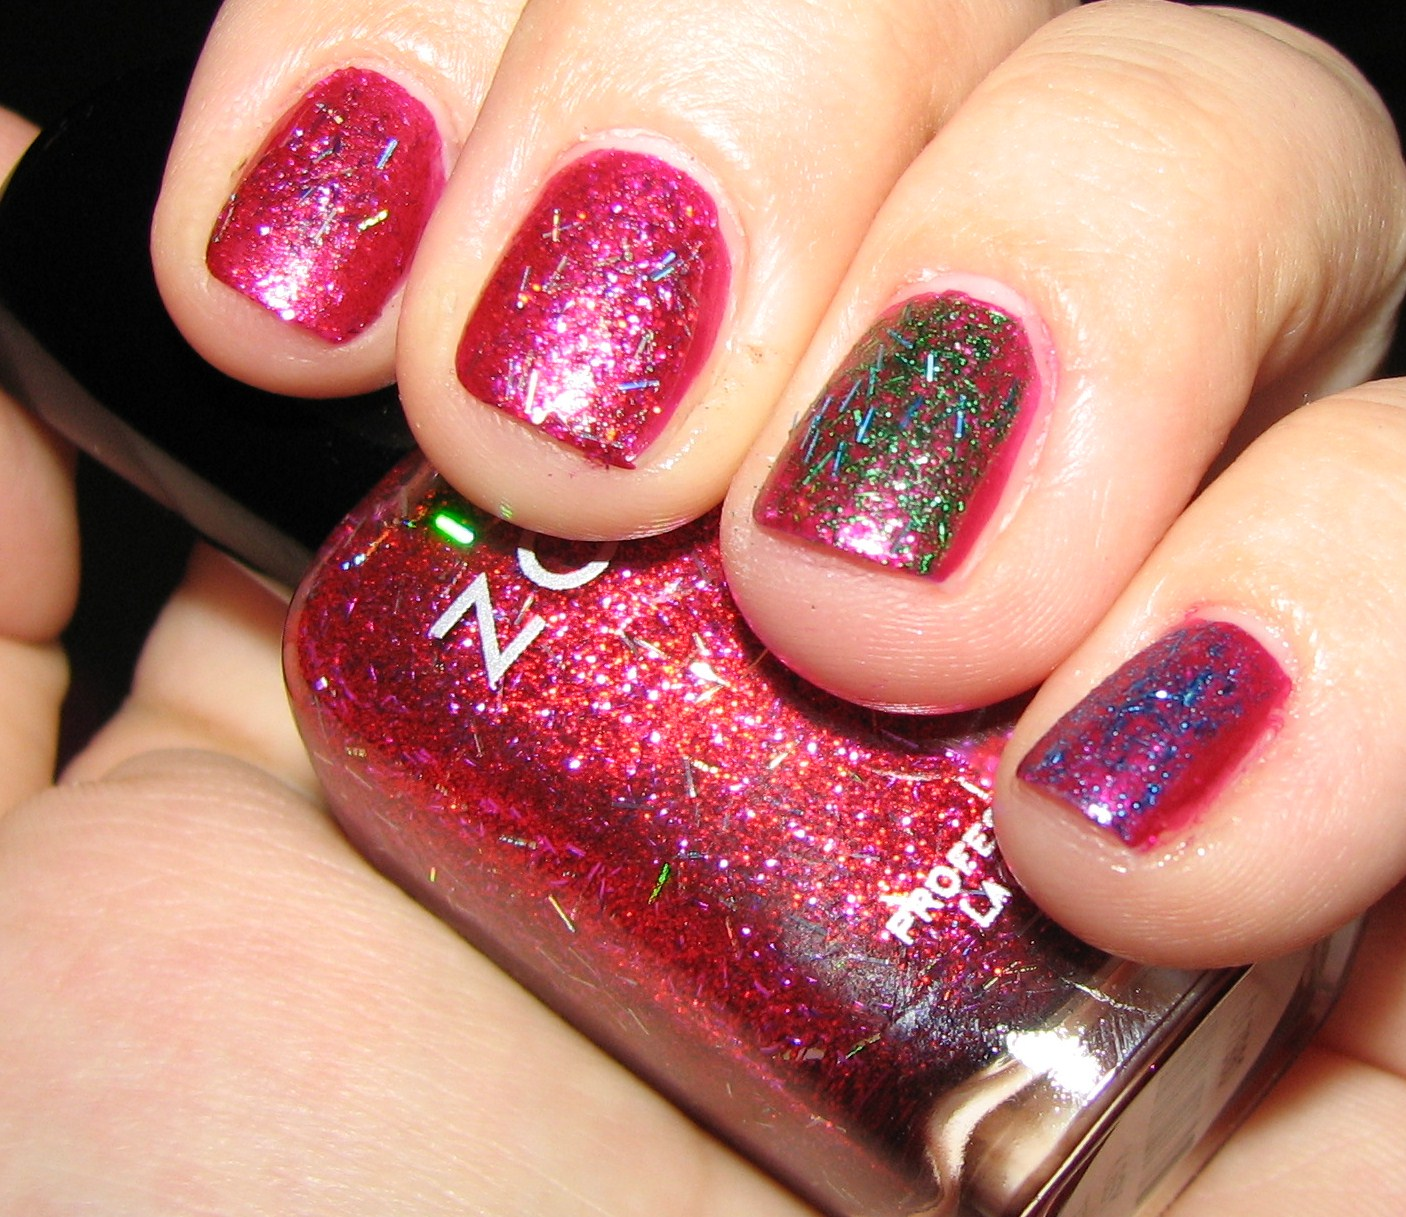 Nail Polish On Pinky Finger Meaning: Zoya Gems & Jewels Holiday Nail Polish Collection